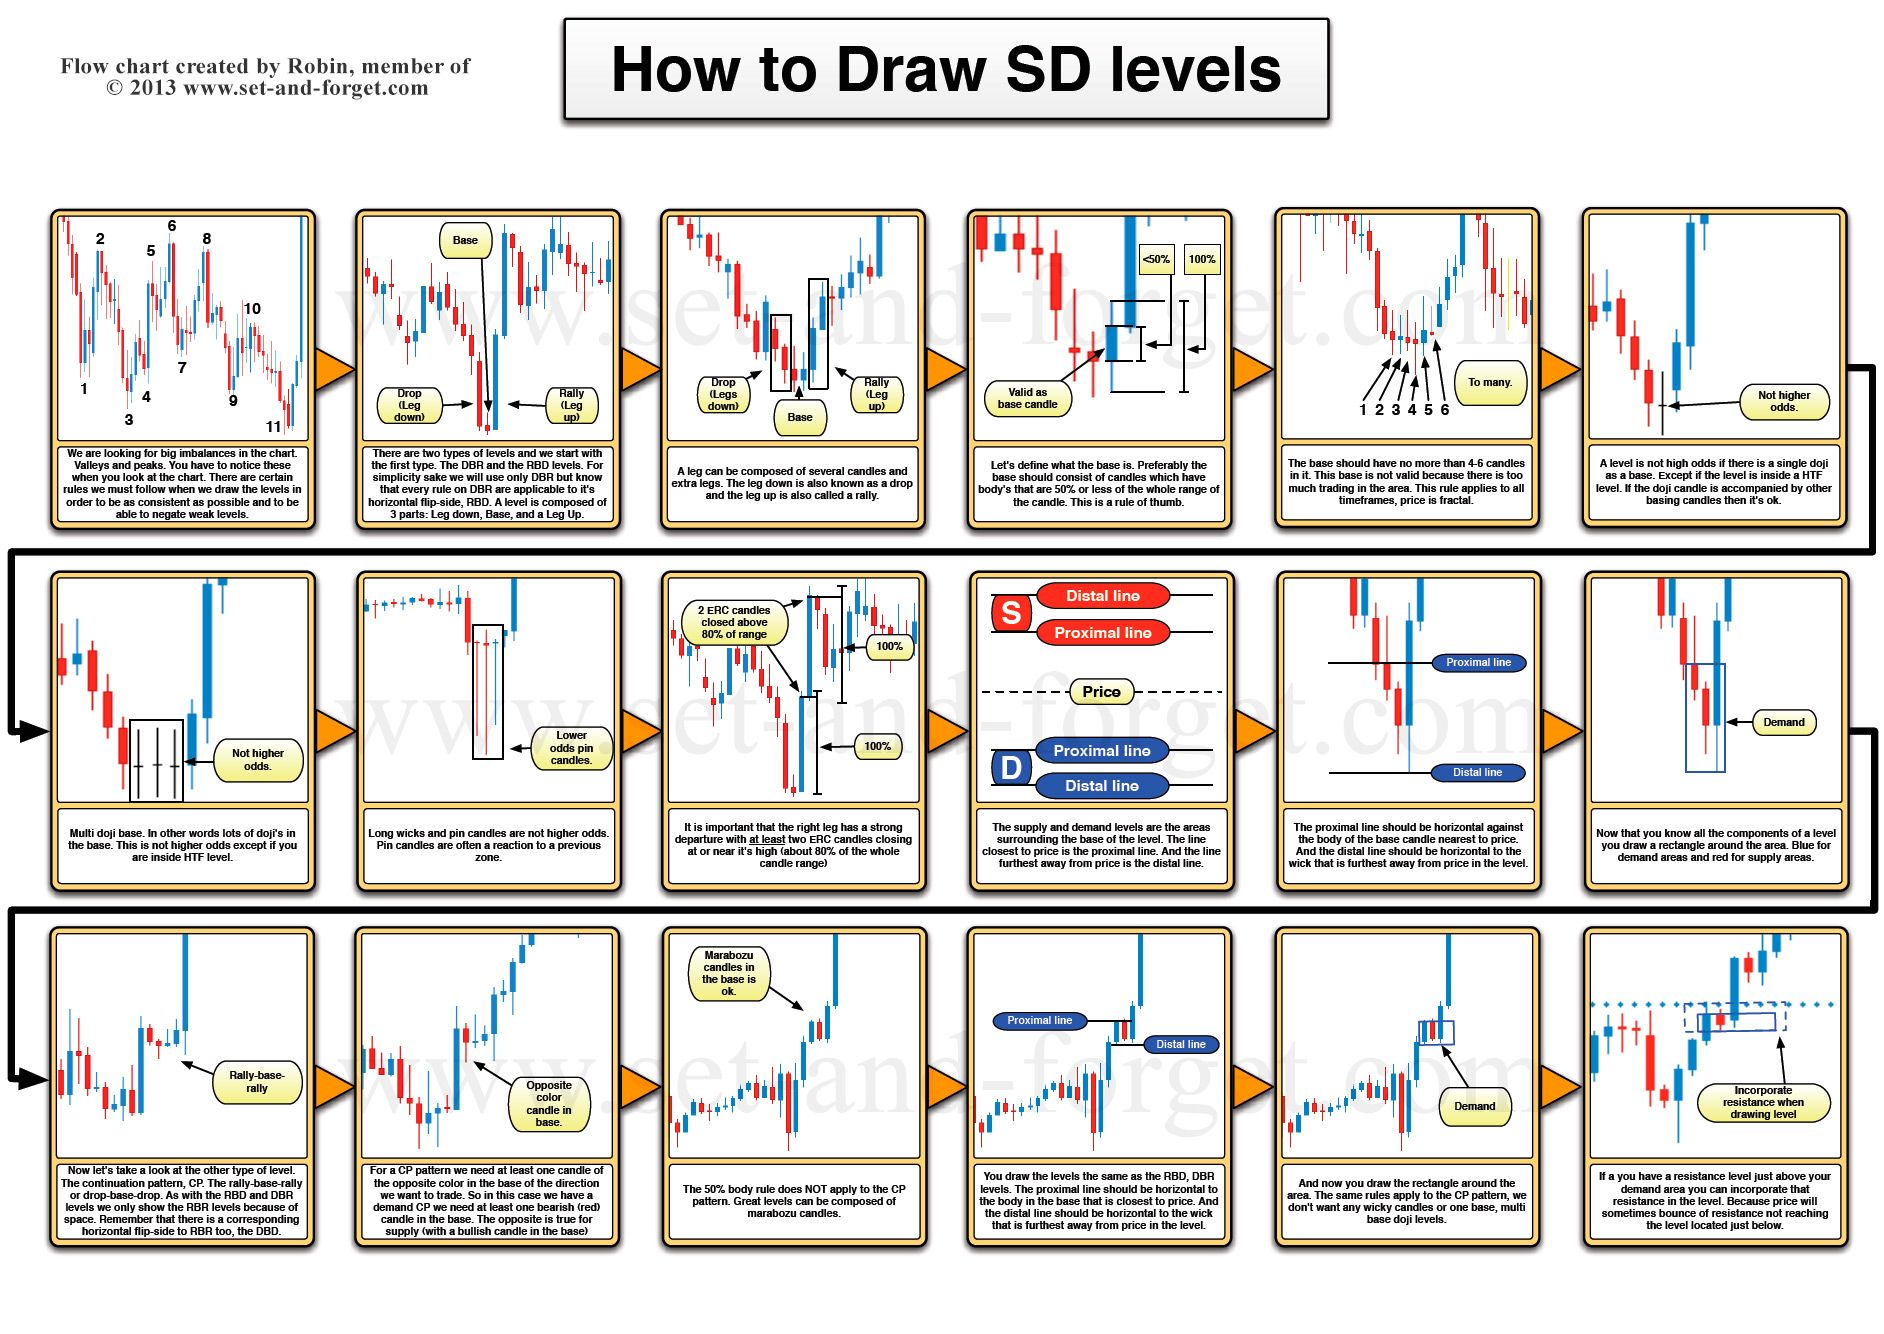 How To Draw Supply And Demand Levels